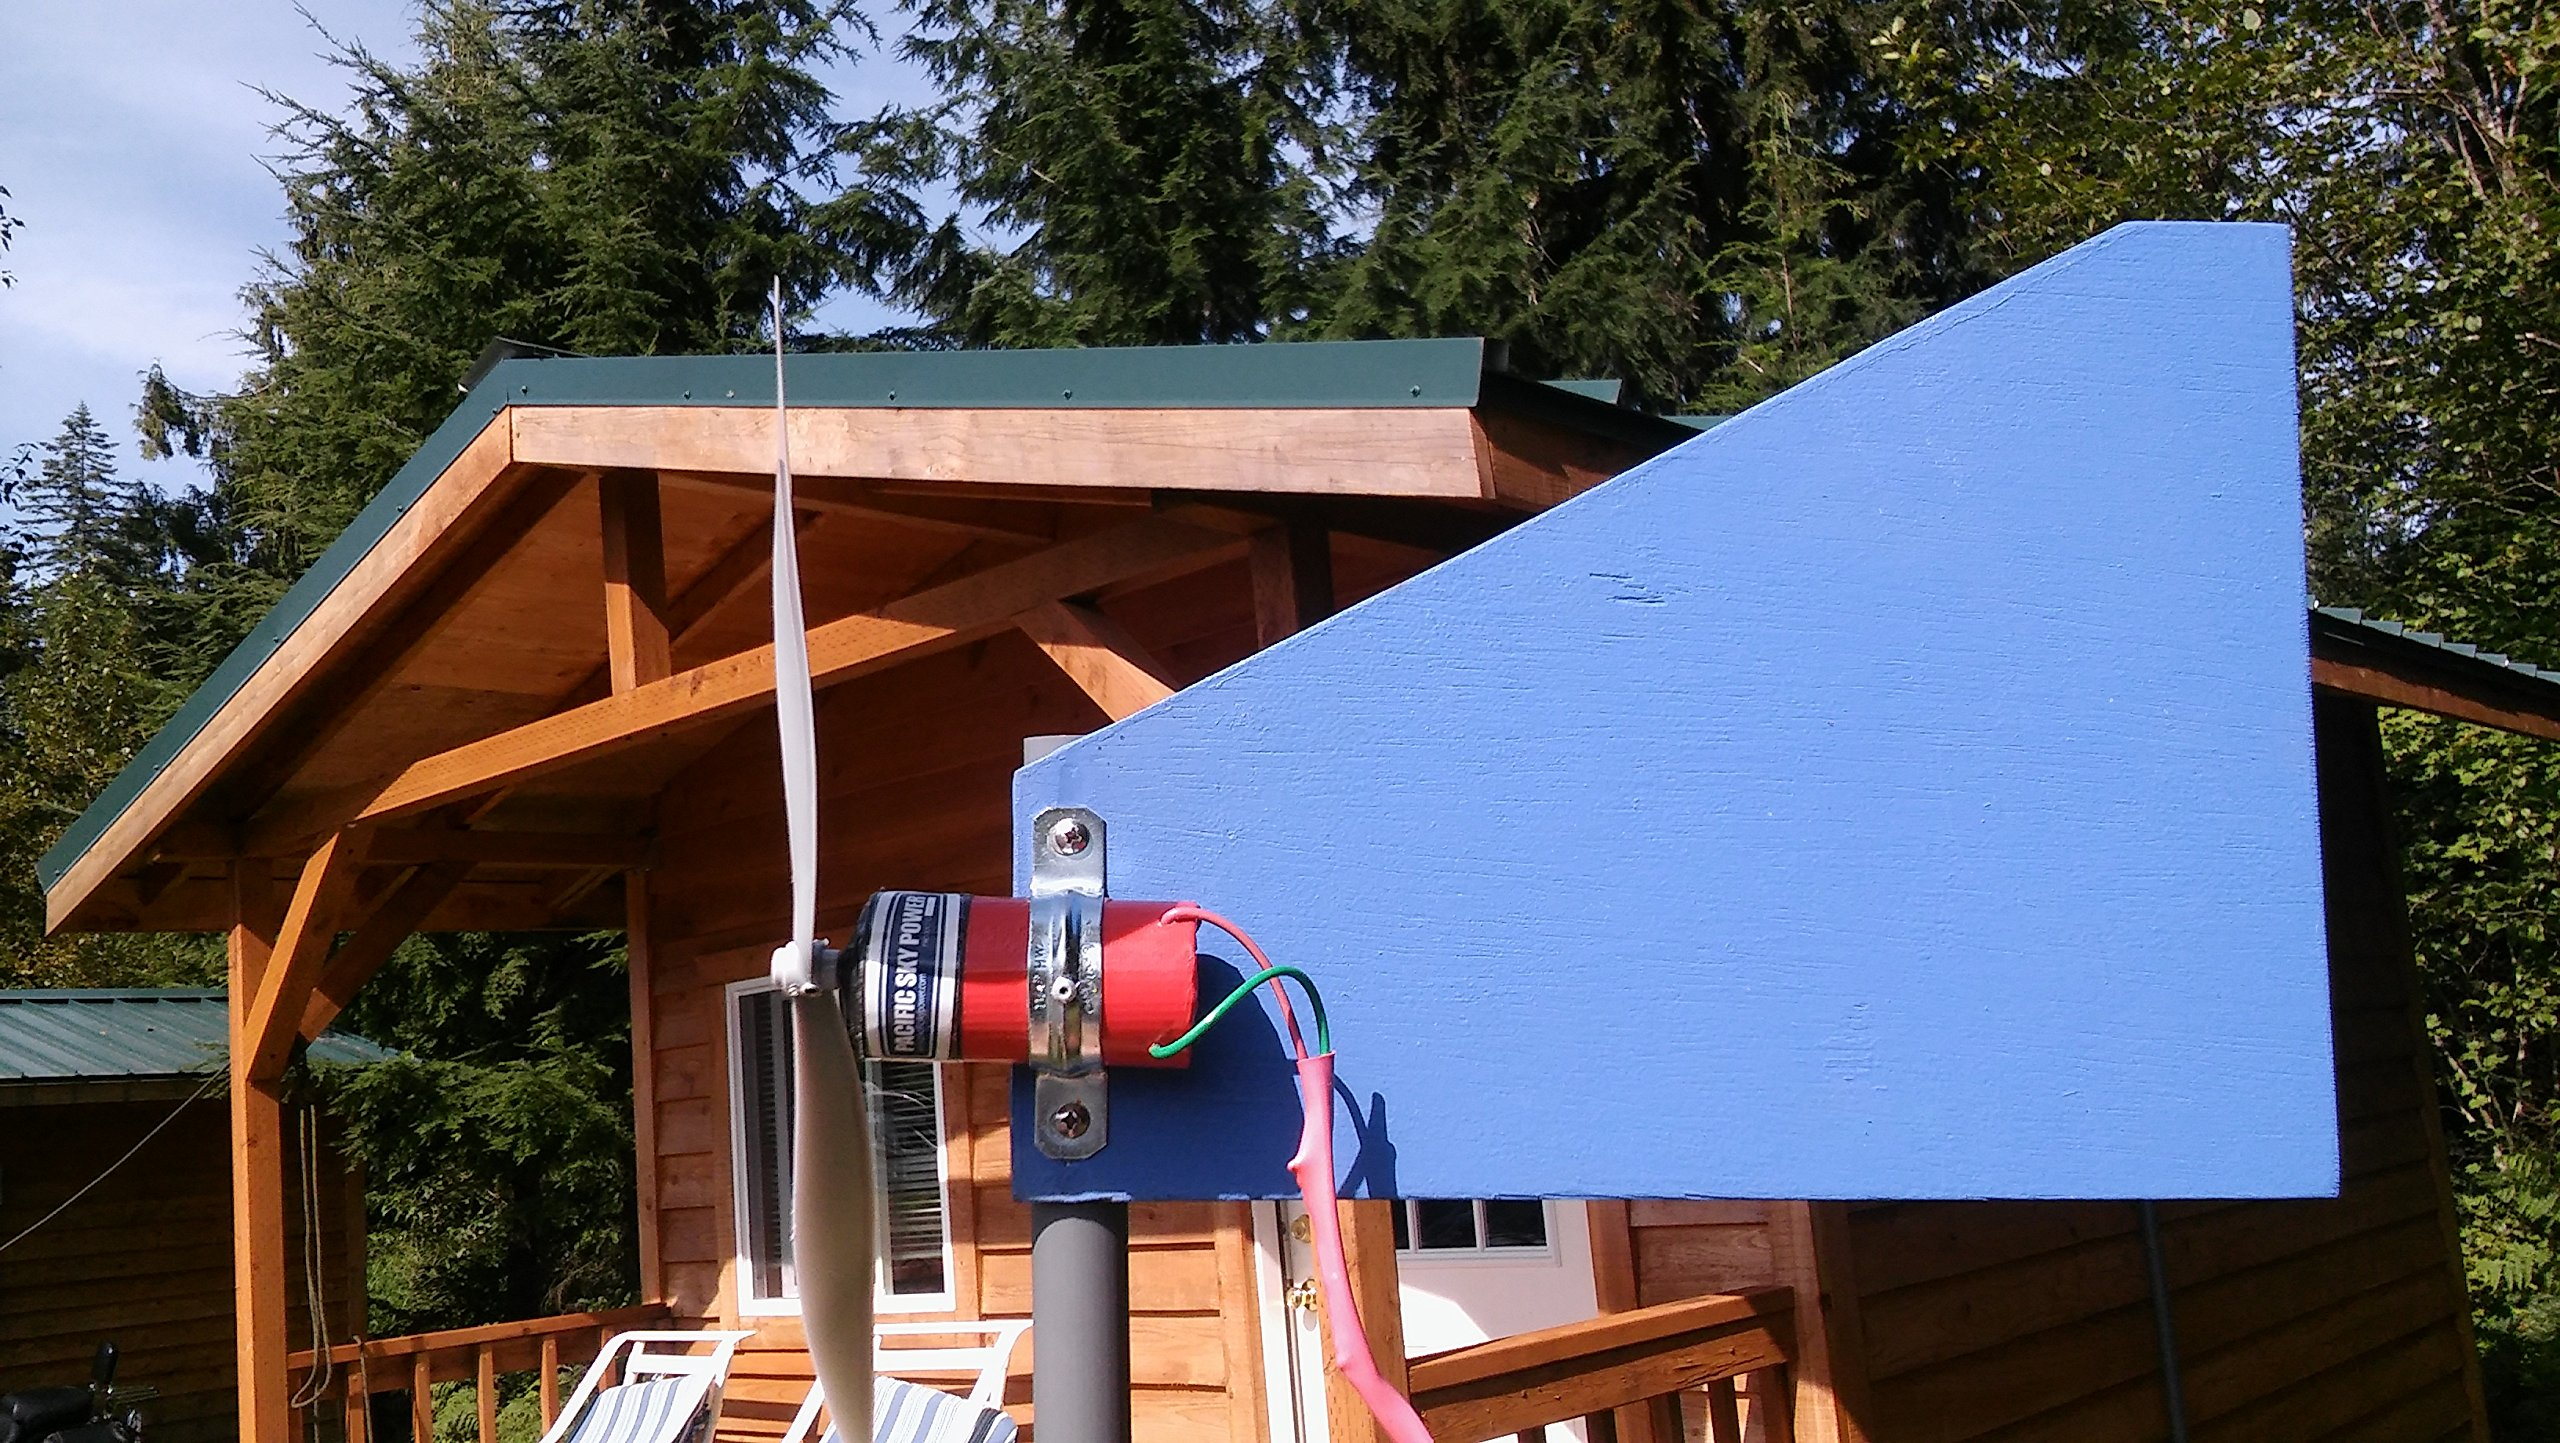 Pacific Sky Power Charger Wind Turbine Generator with Fin by Pacific Sky Power (Image #3)